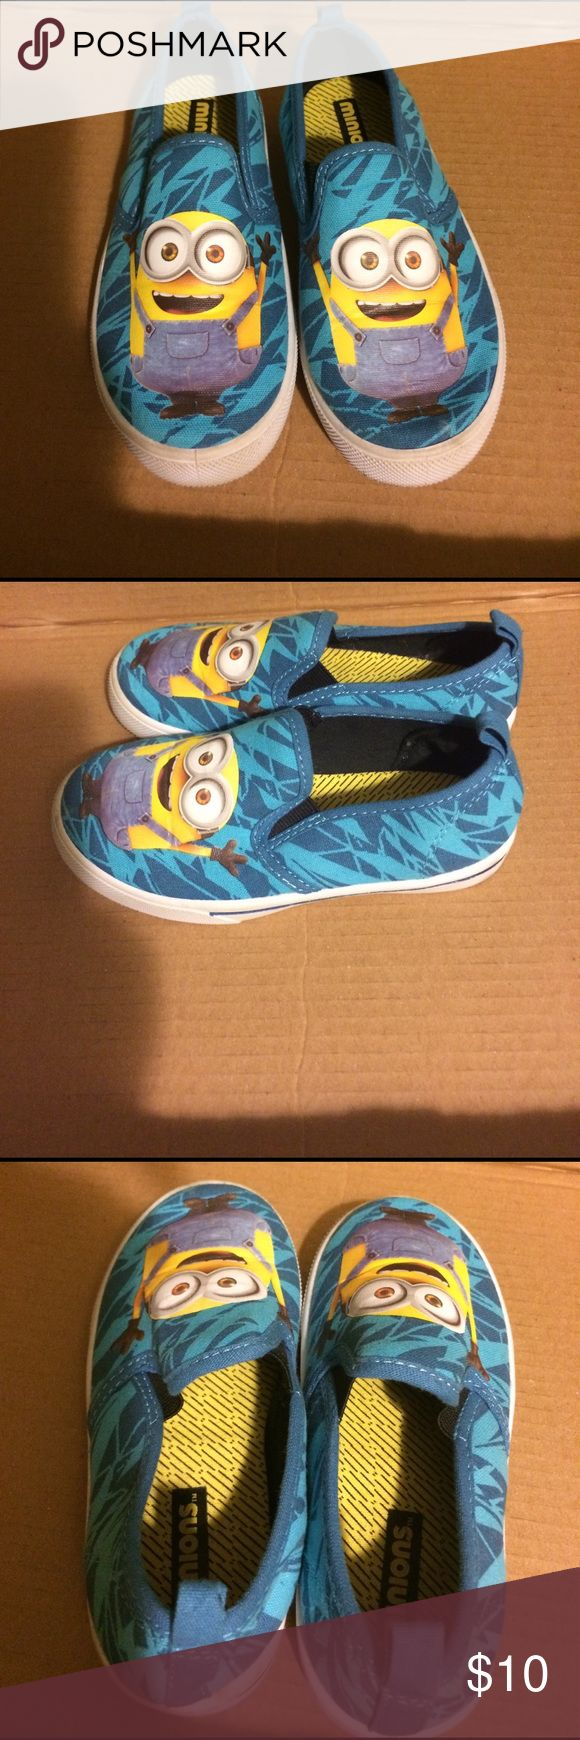 Minions shoes Cute slip on minion shoes!  Never fit my kid right so only worn once or twice. minions Shoes Sneakers